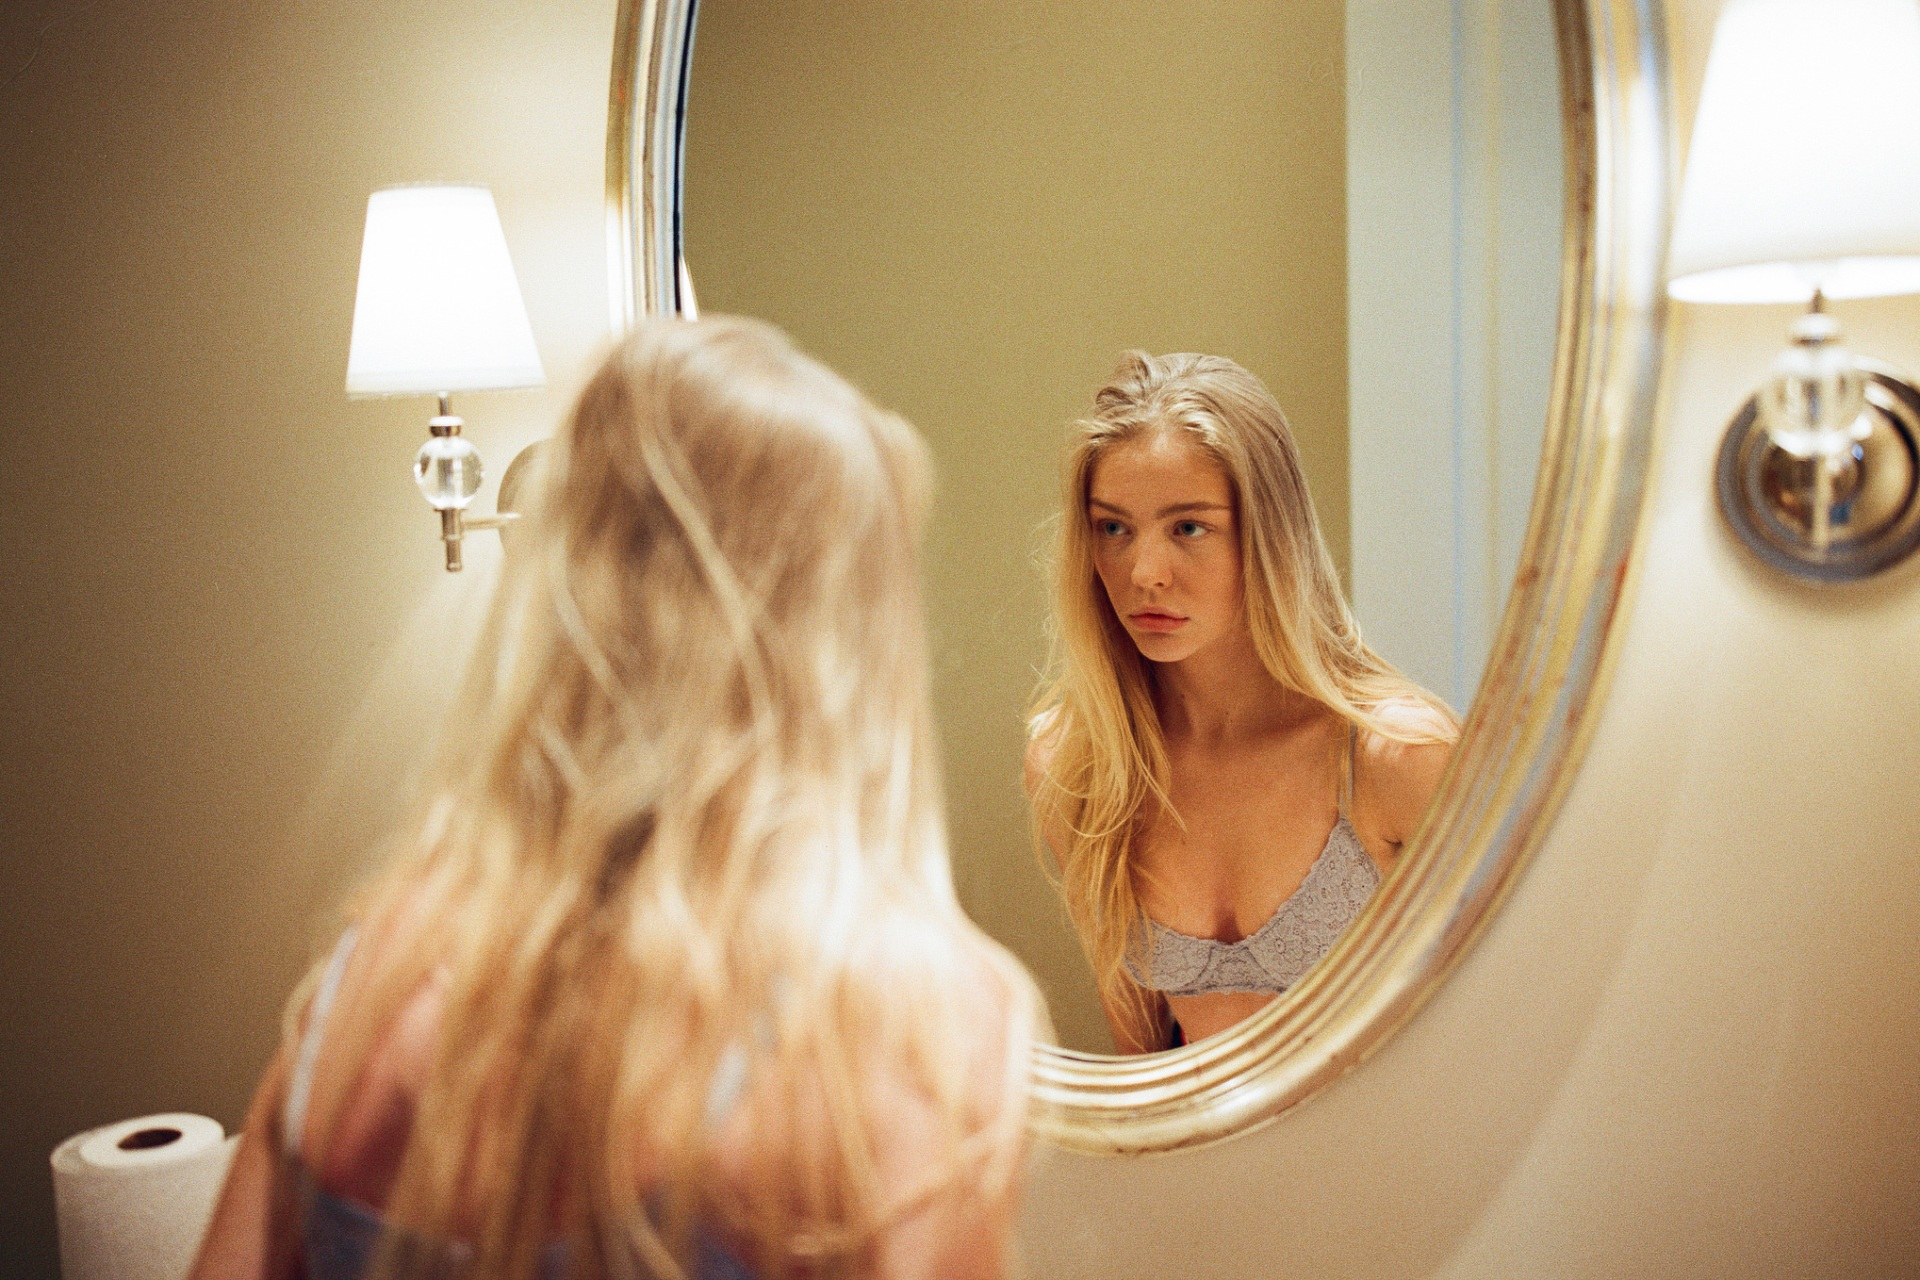 girl looking at her reflection, beauty, being beautiful, inner beauty, dear woman